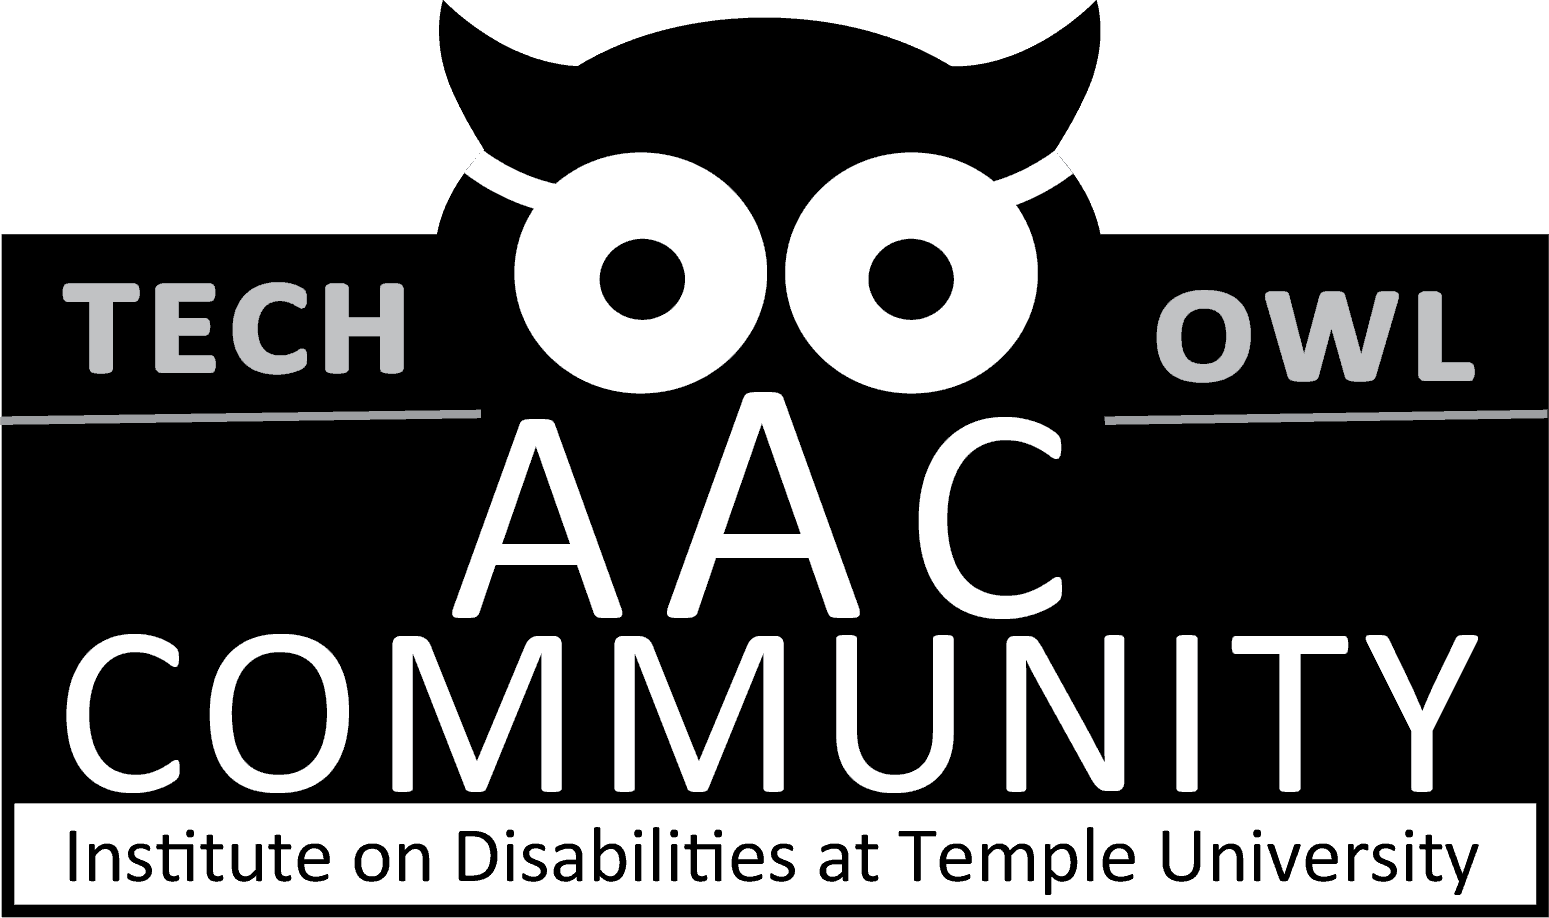 AAC Community logo